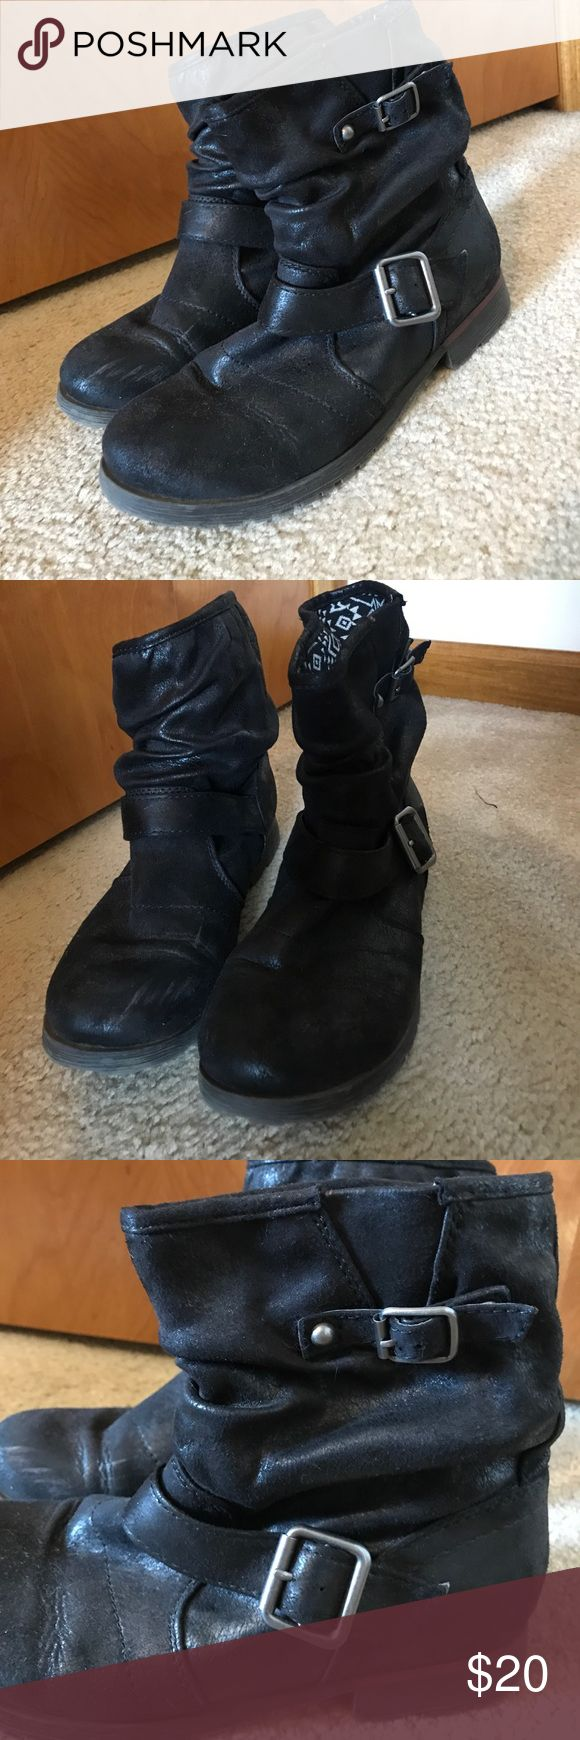 Super cute black moto boots Worn a handful of times, shoes very minimal wear, and are super comfy. Feel free to make an offer! Rock and Candy Shoes Combat & Moto Boots